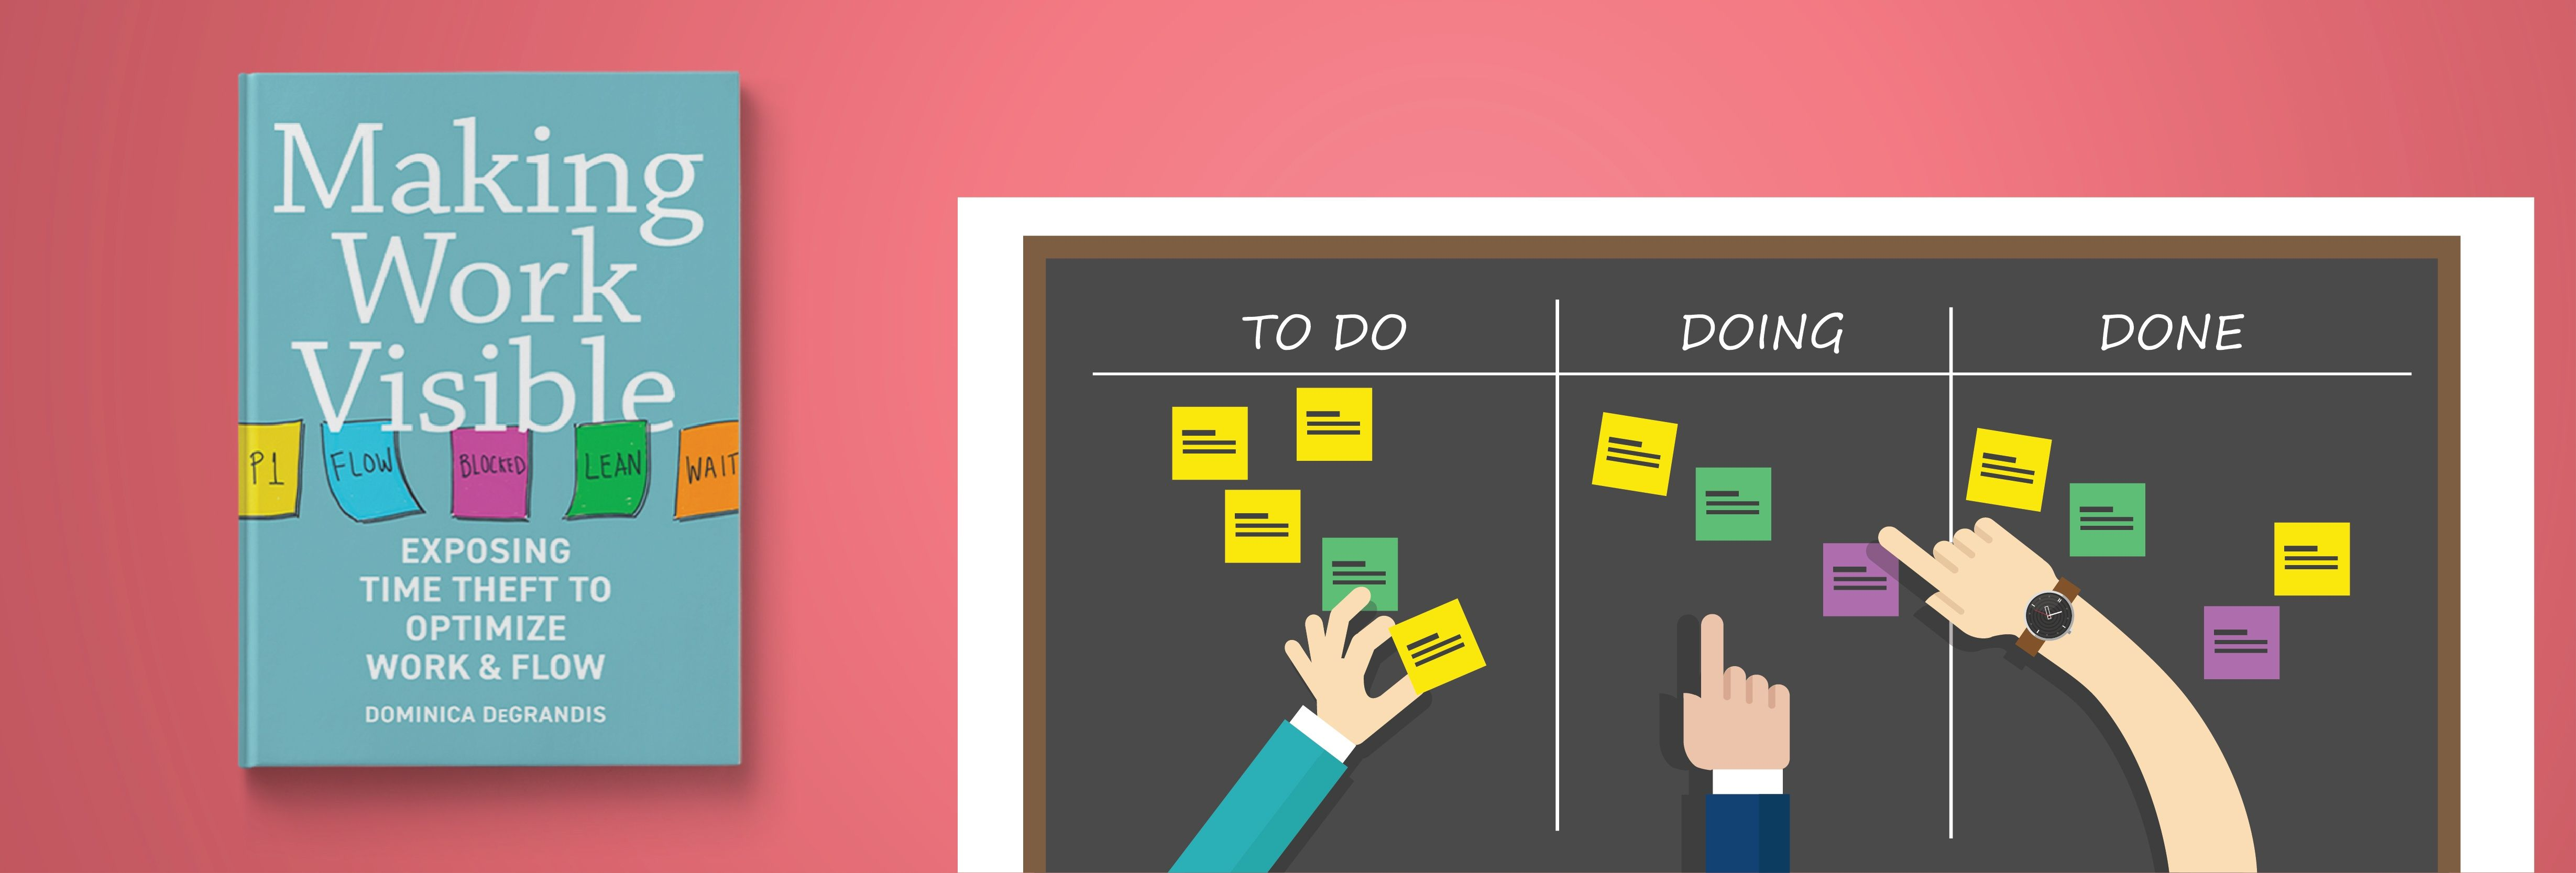 Making Work Visible: How To Use Kanban To Conquer Your To-Do-List And Do Your Best Work